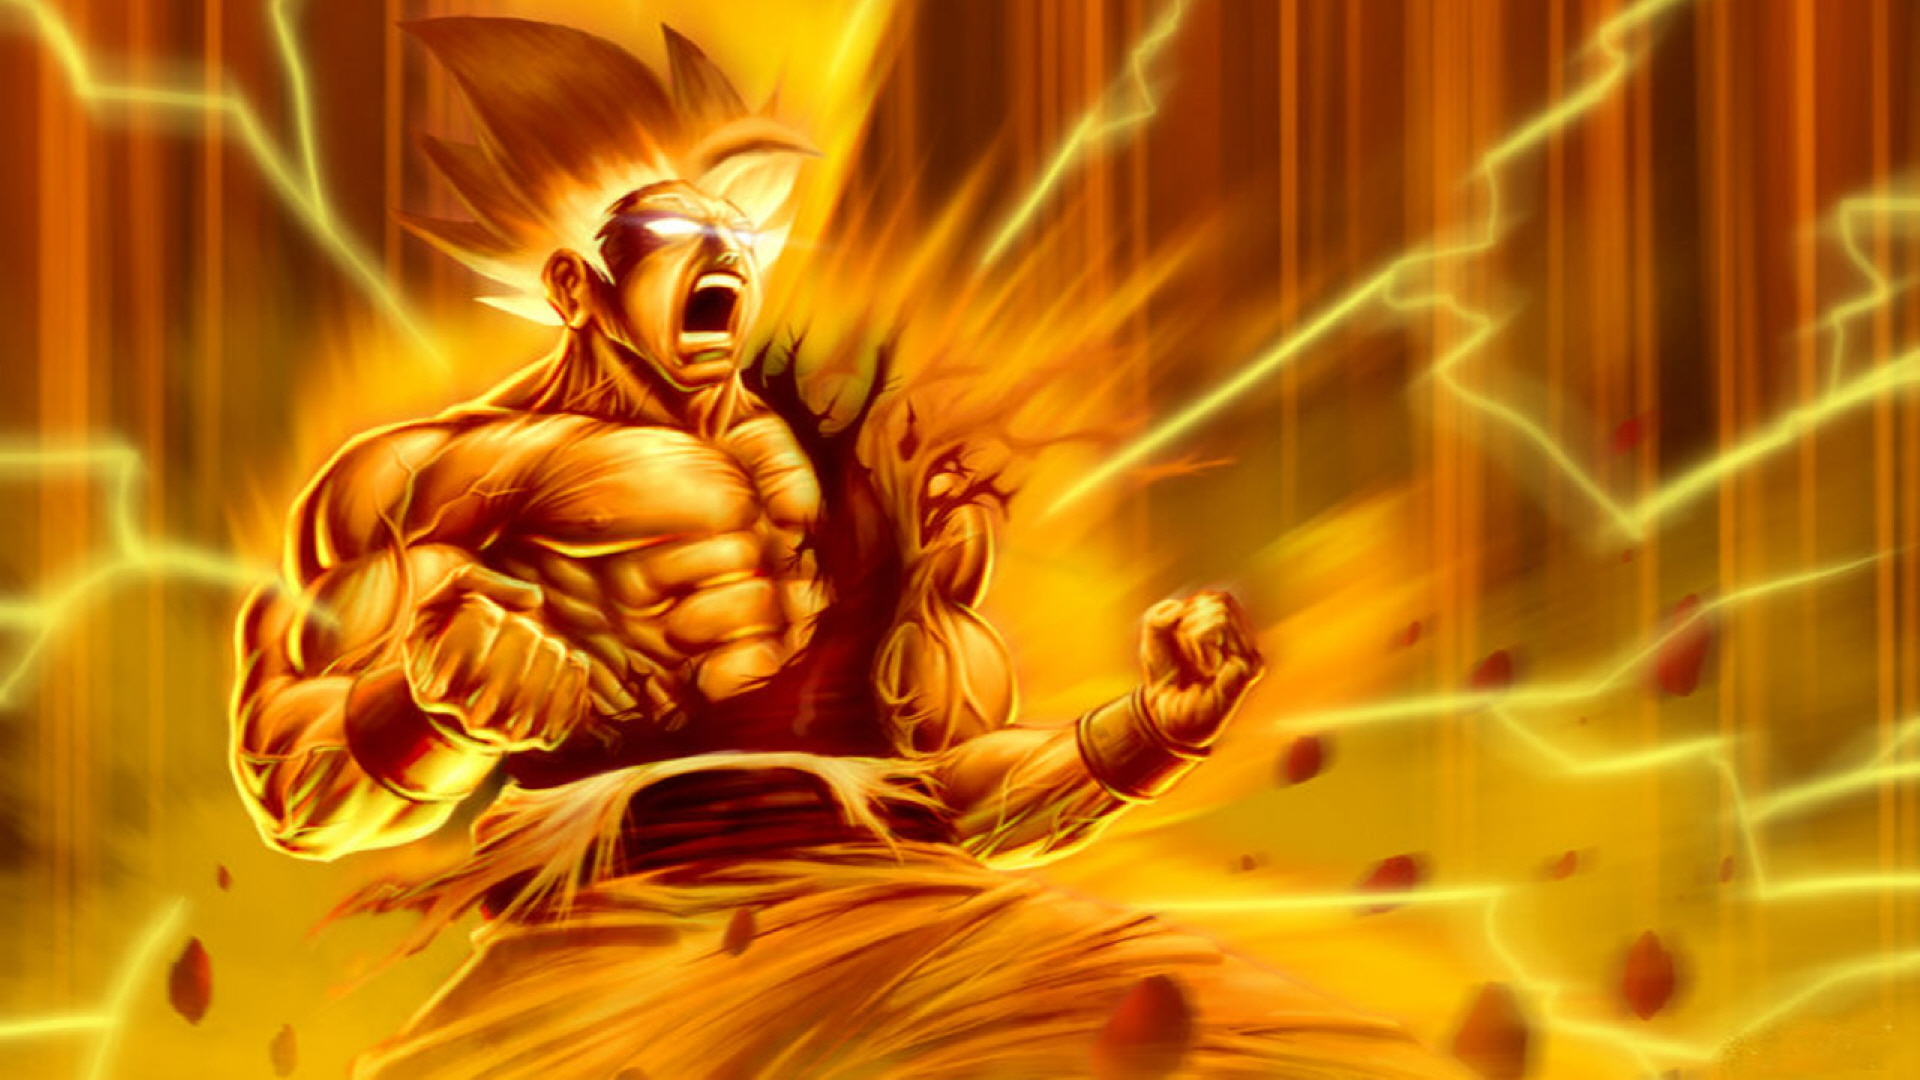 Dragon Ball Z Super Saiyan Wallpaper 6079 Wallpaper Cool 1920x1080